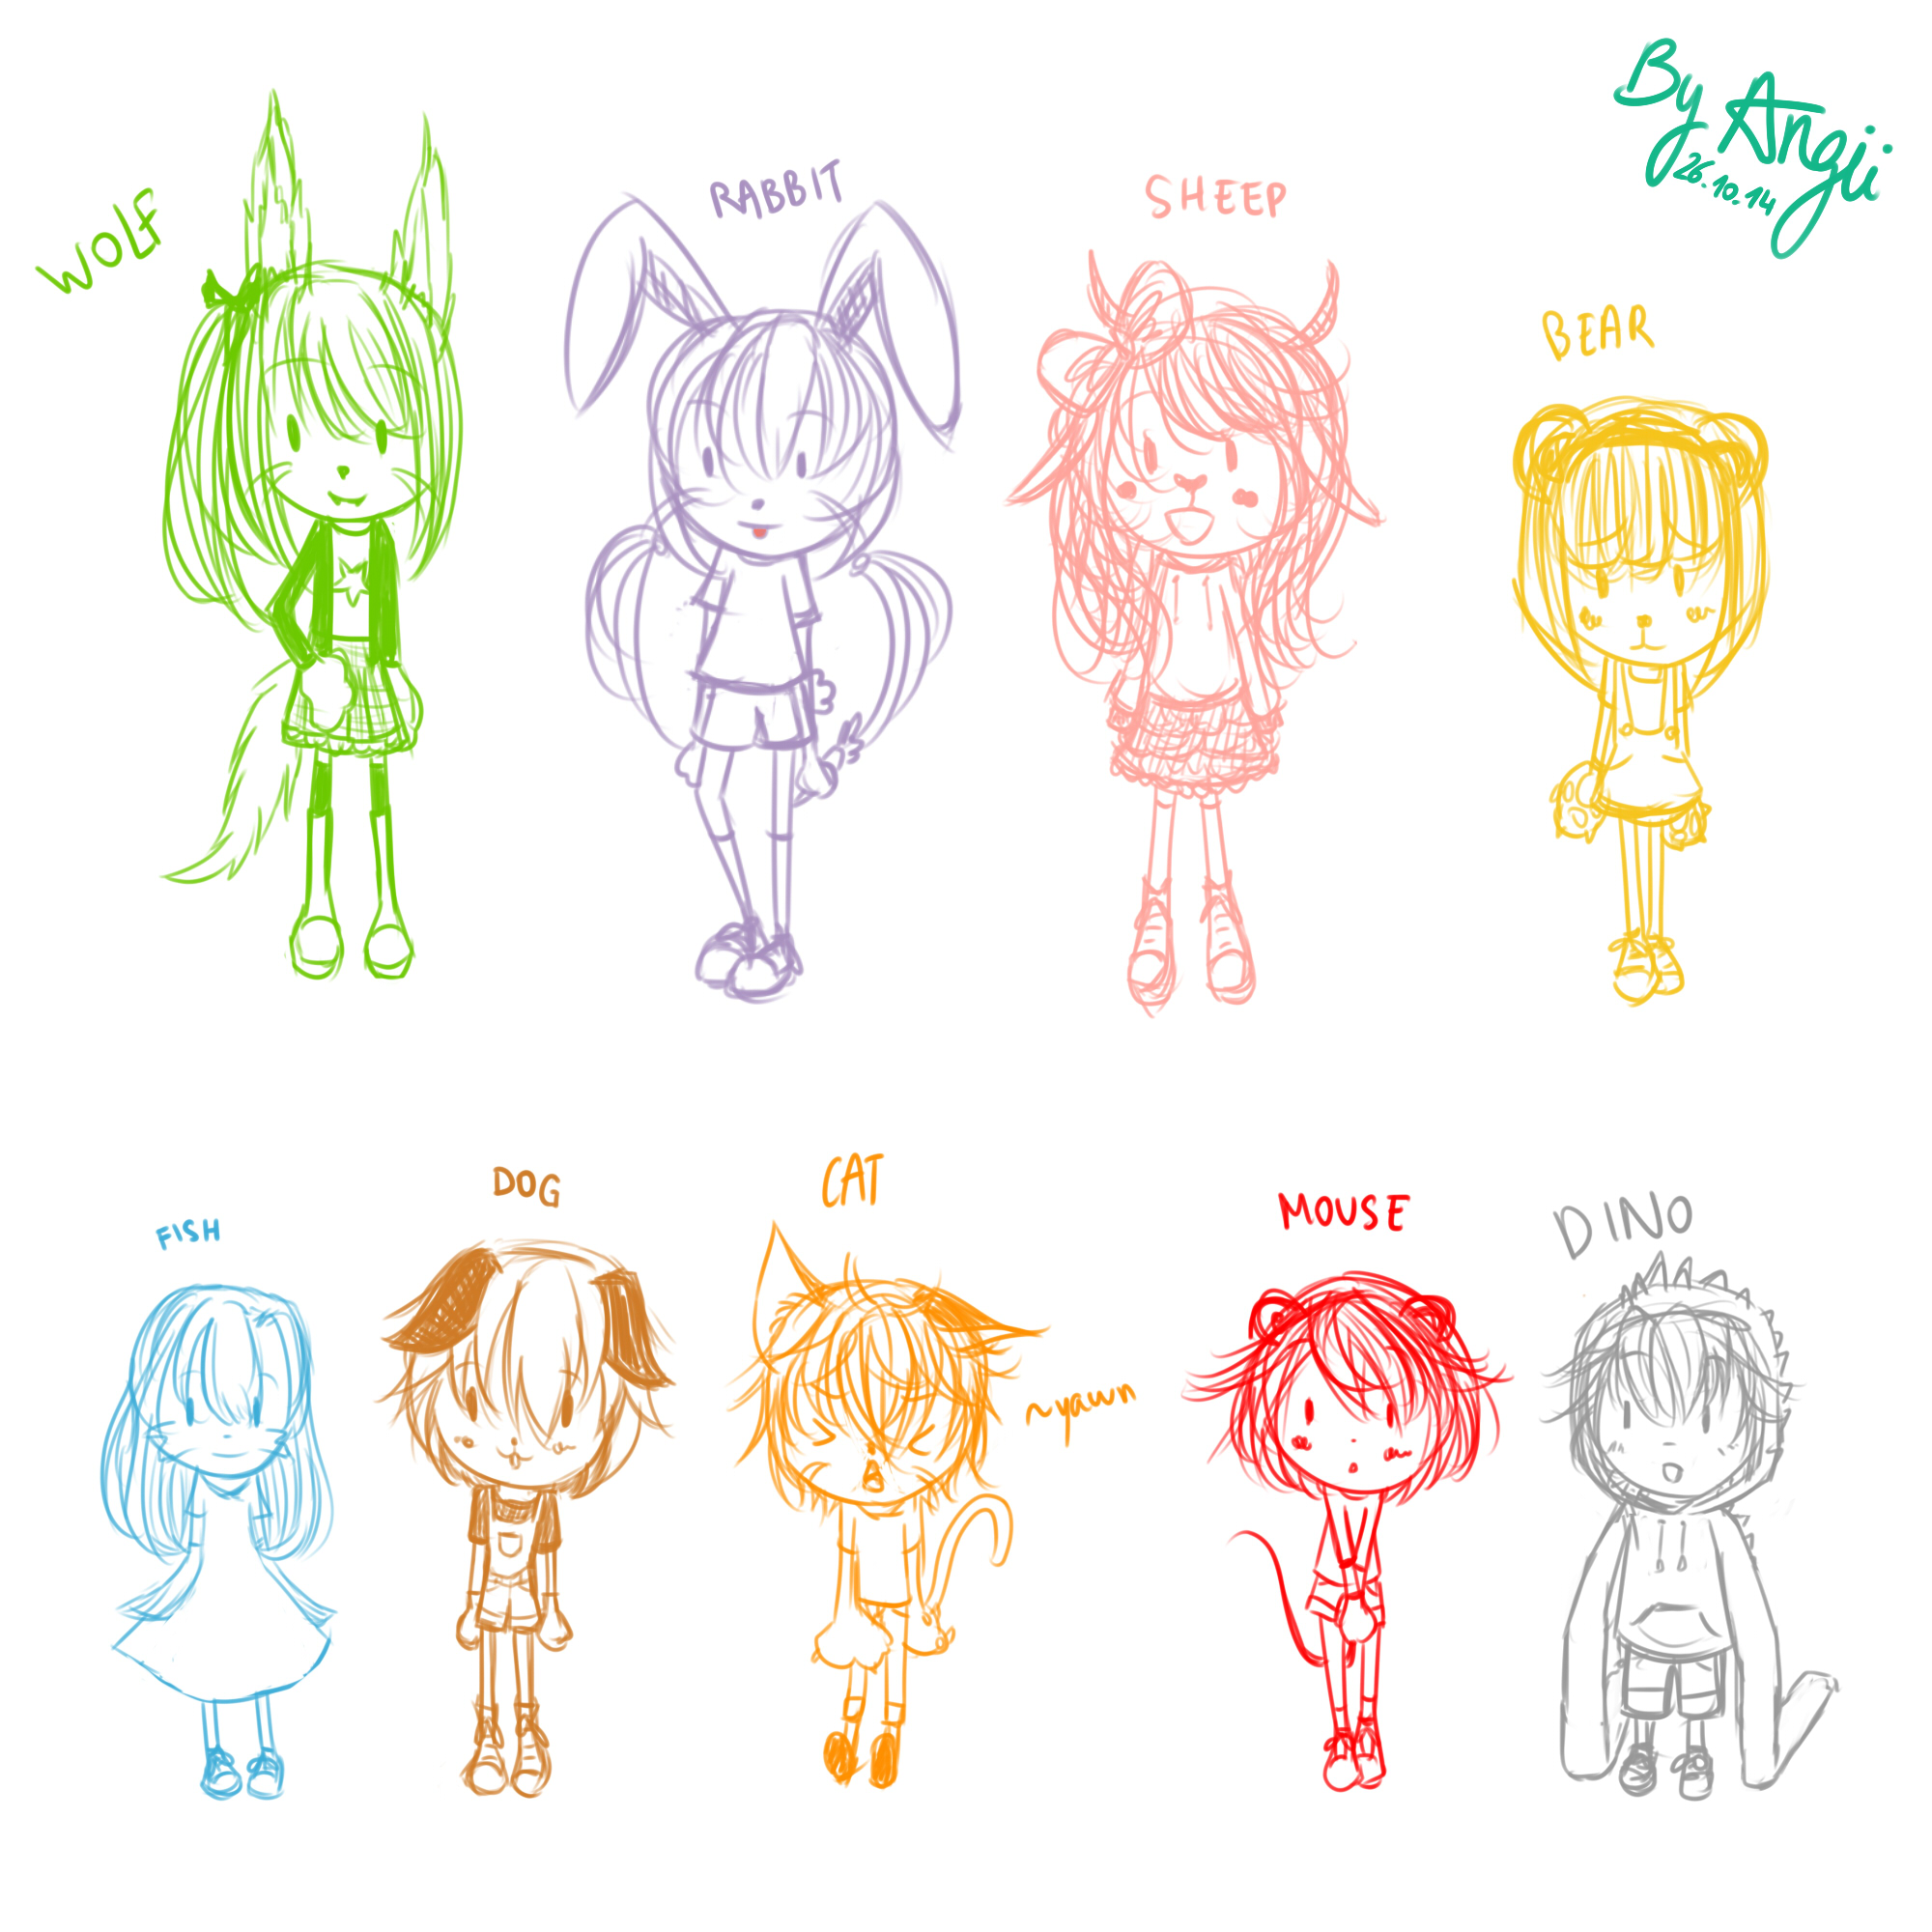 [SAI] 261014 Chibi animals !